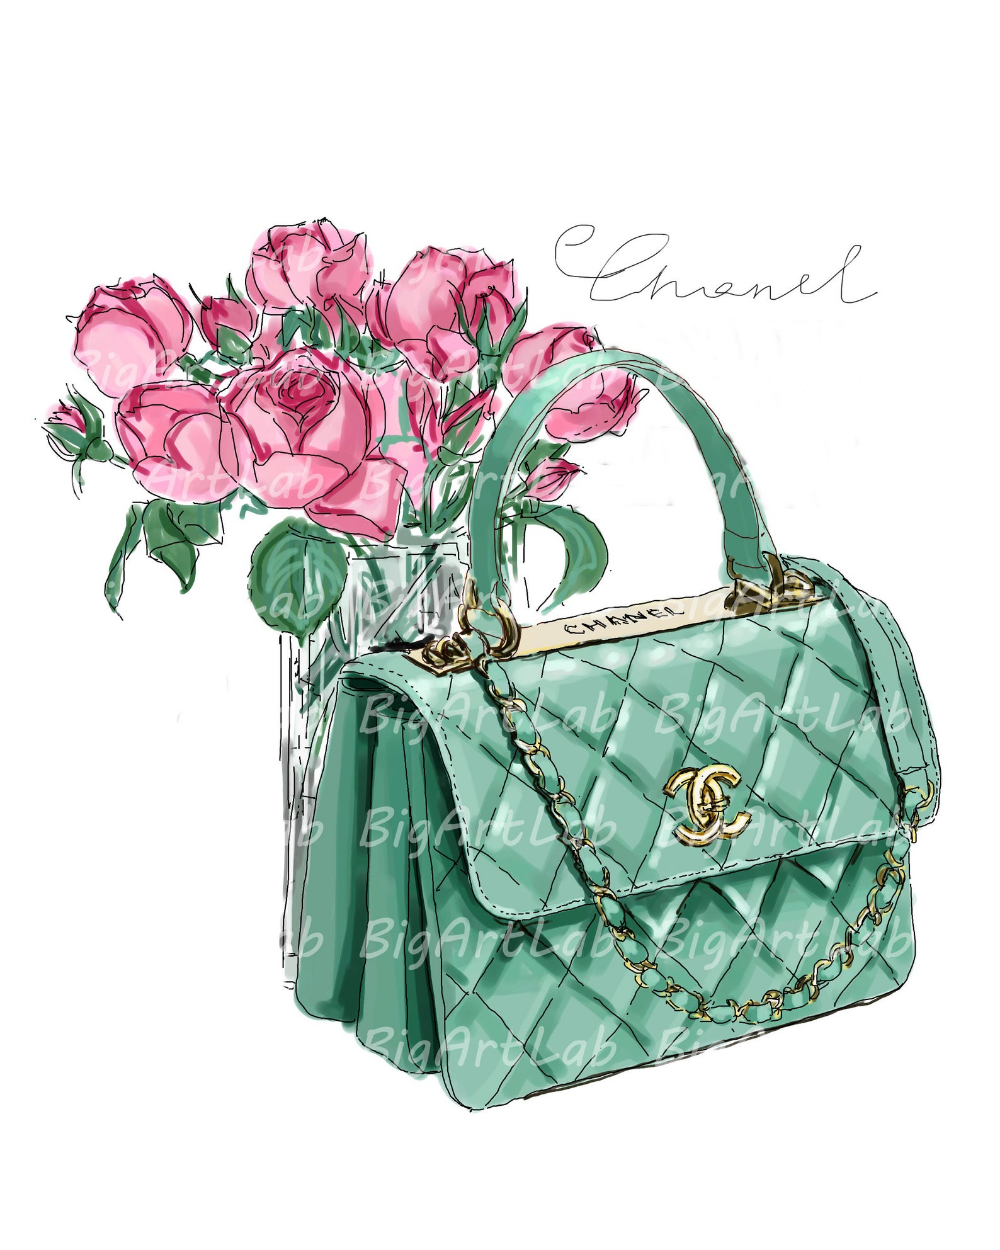 Instant download chanel bag psd files clipart wall art